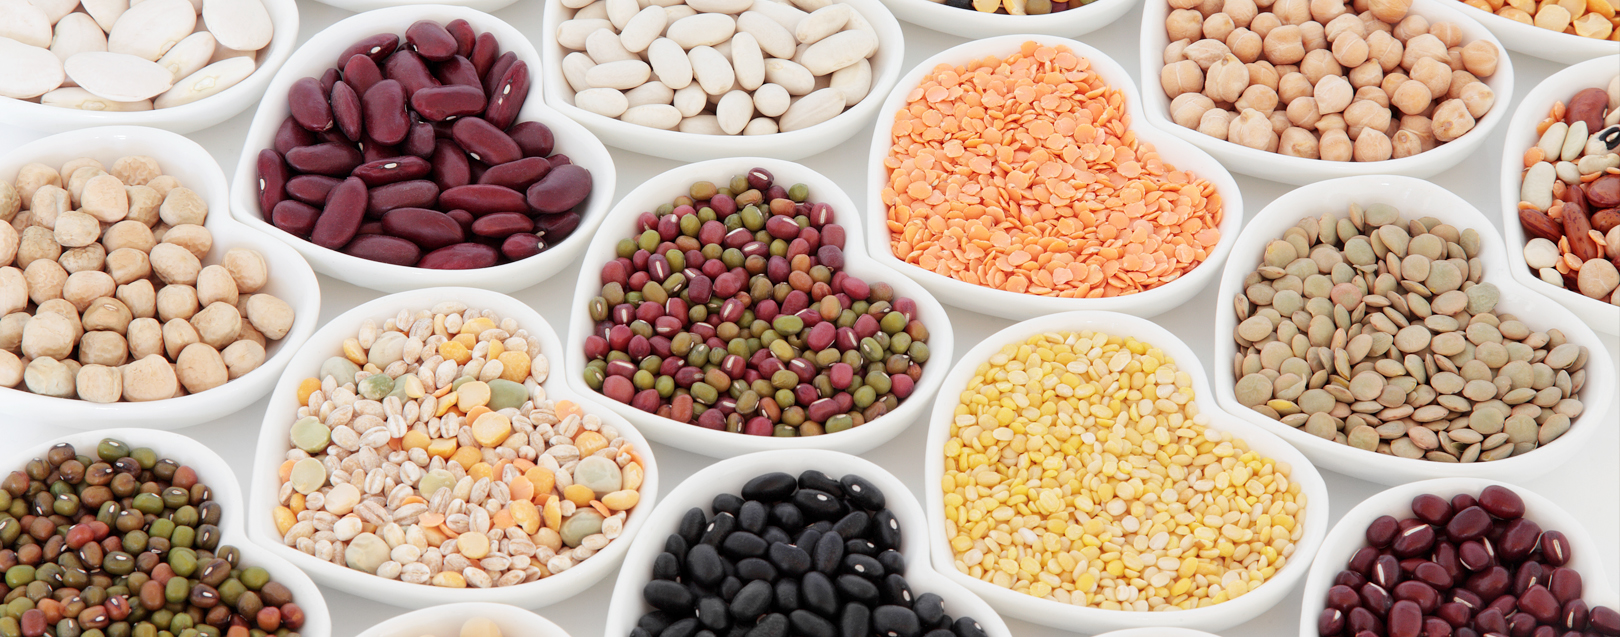 Talks on to resolve pulses import duty hike issue: Canadian Minister